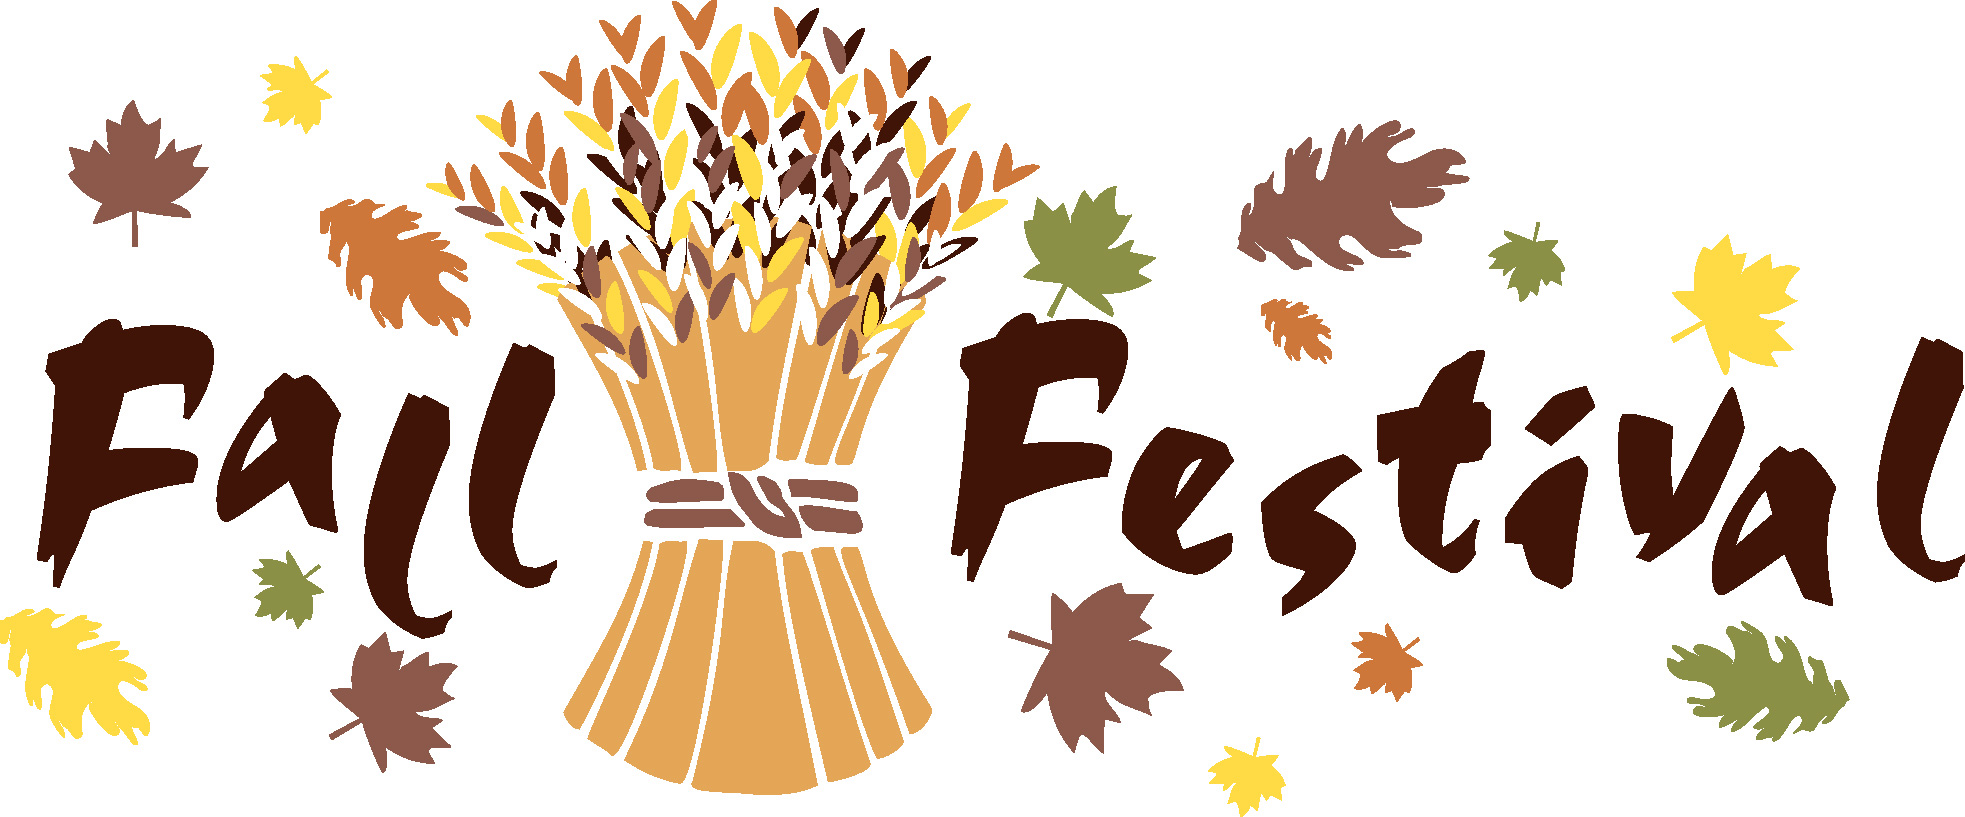 Festival clipart. Fall wikiclipart